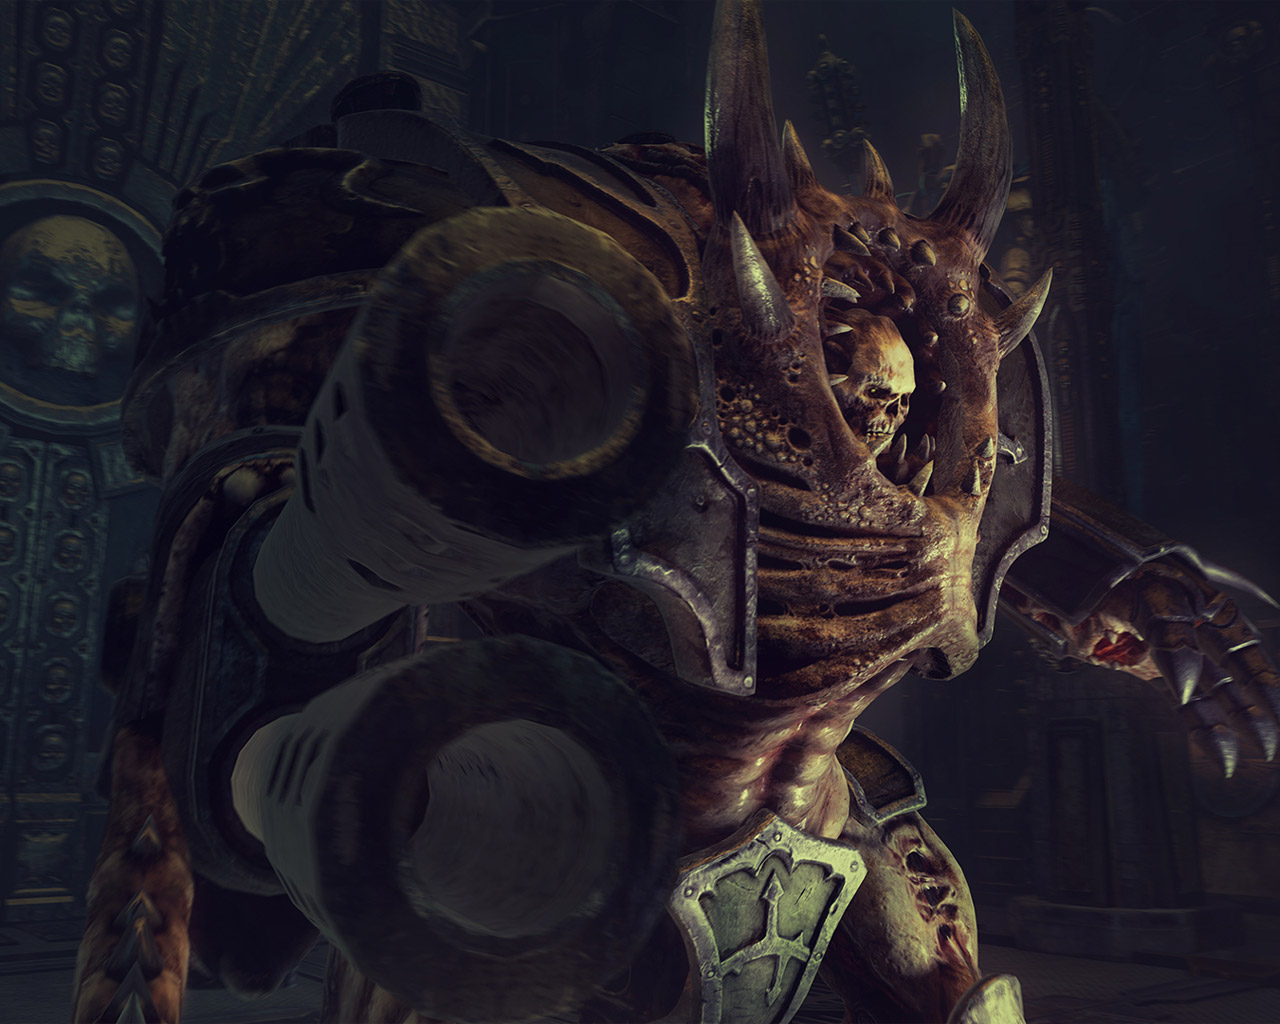 Free Warhammer 40,000: Inquisitor - Martyr Wallpaper in 1280x1024